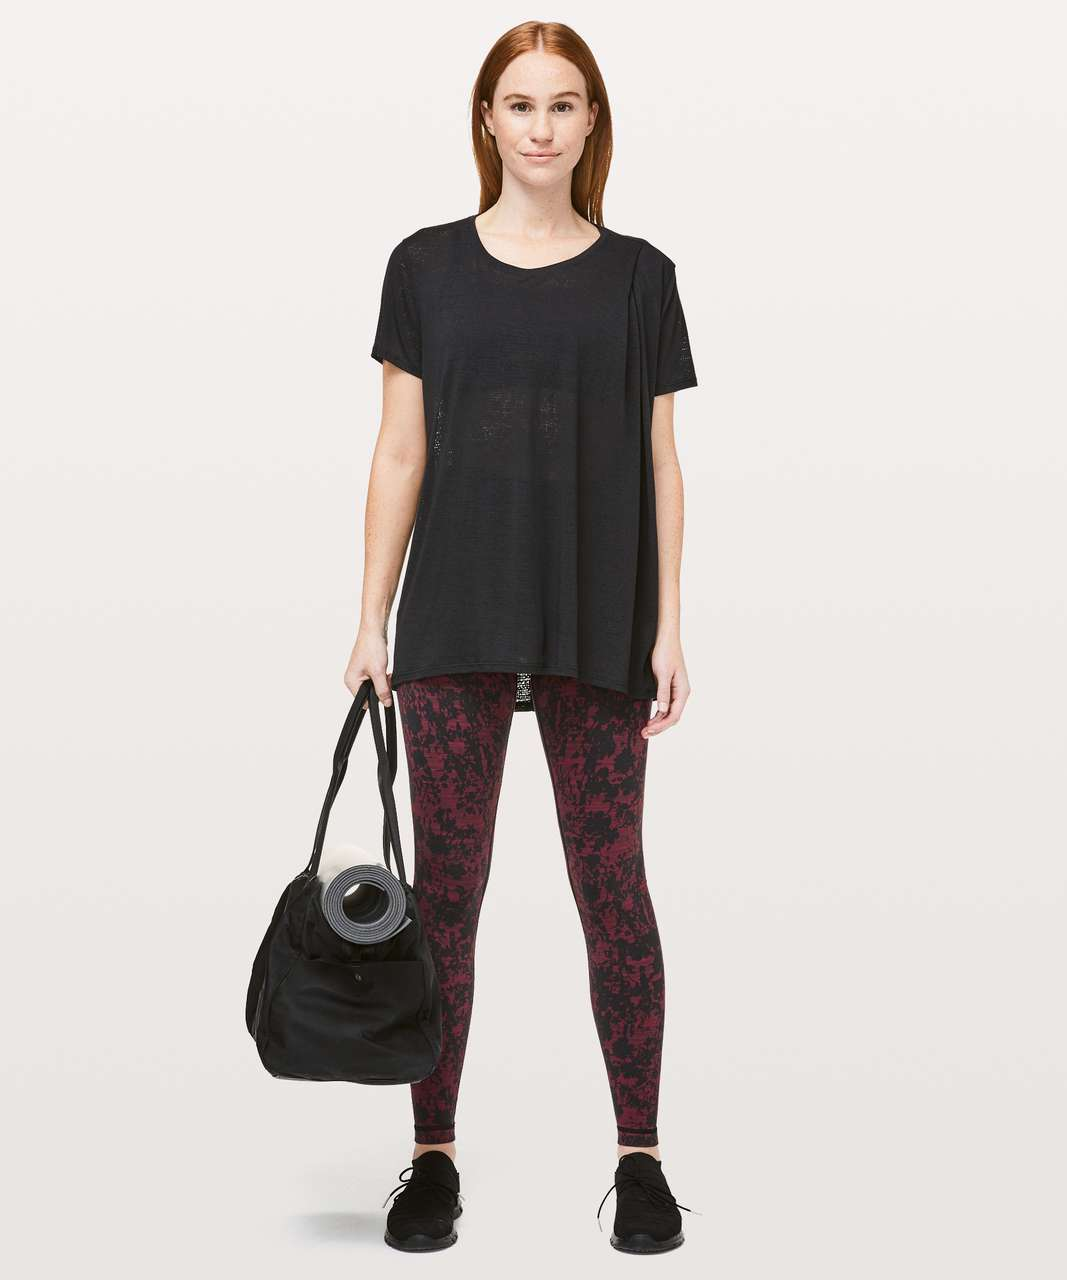 Lululemon Back To Me Tee - Black